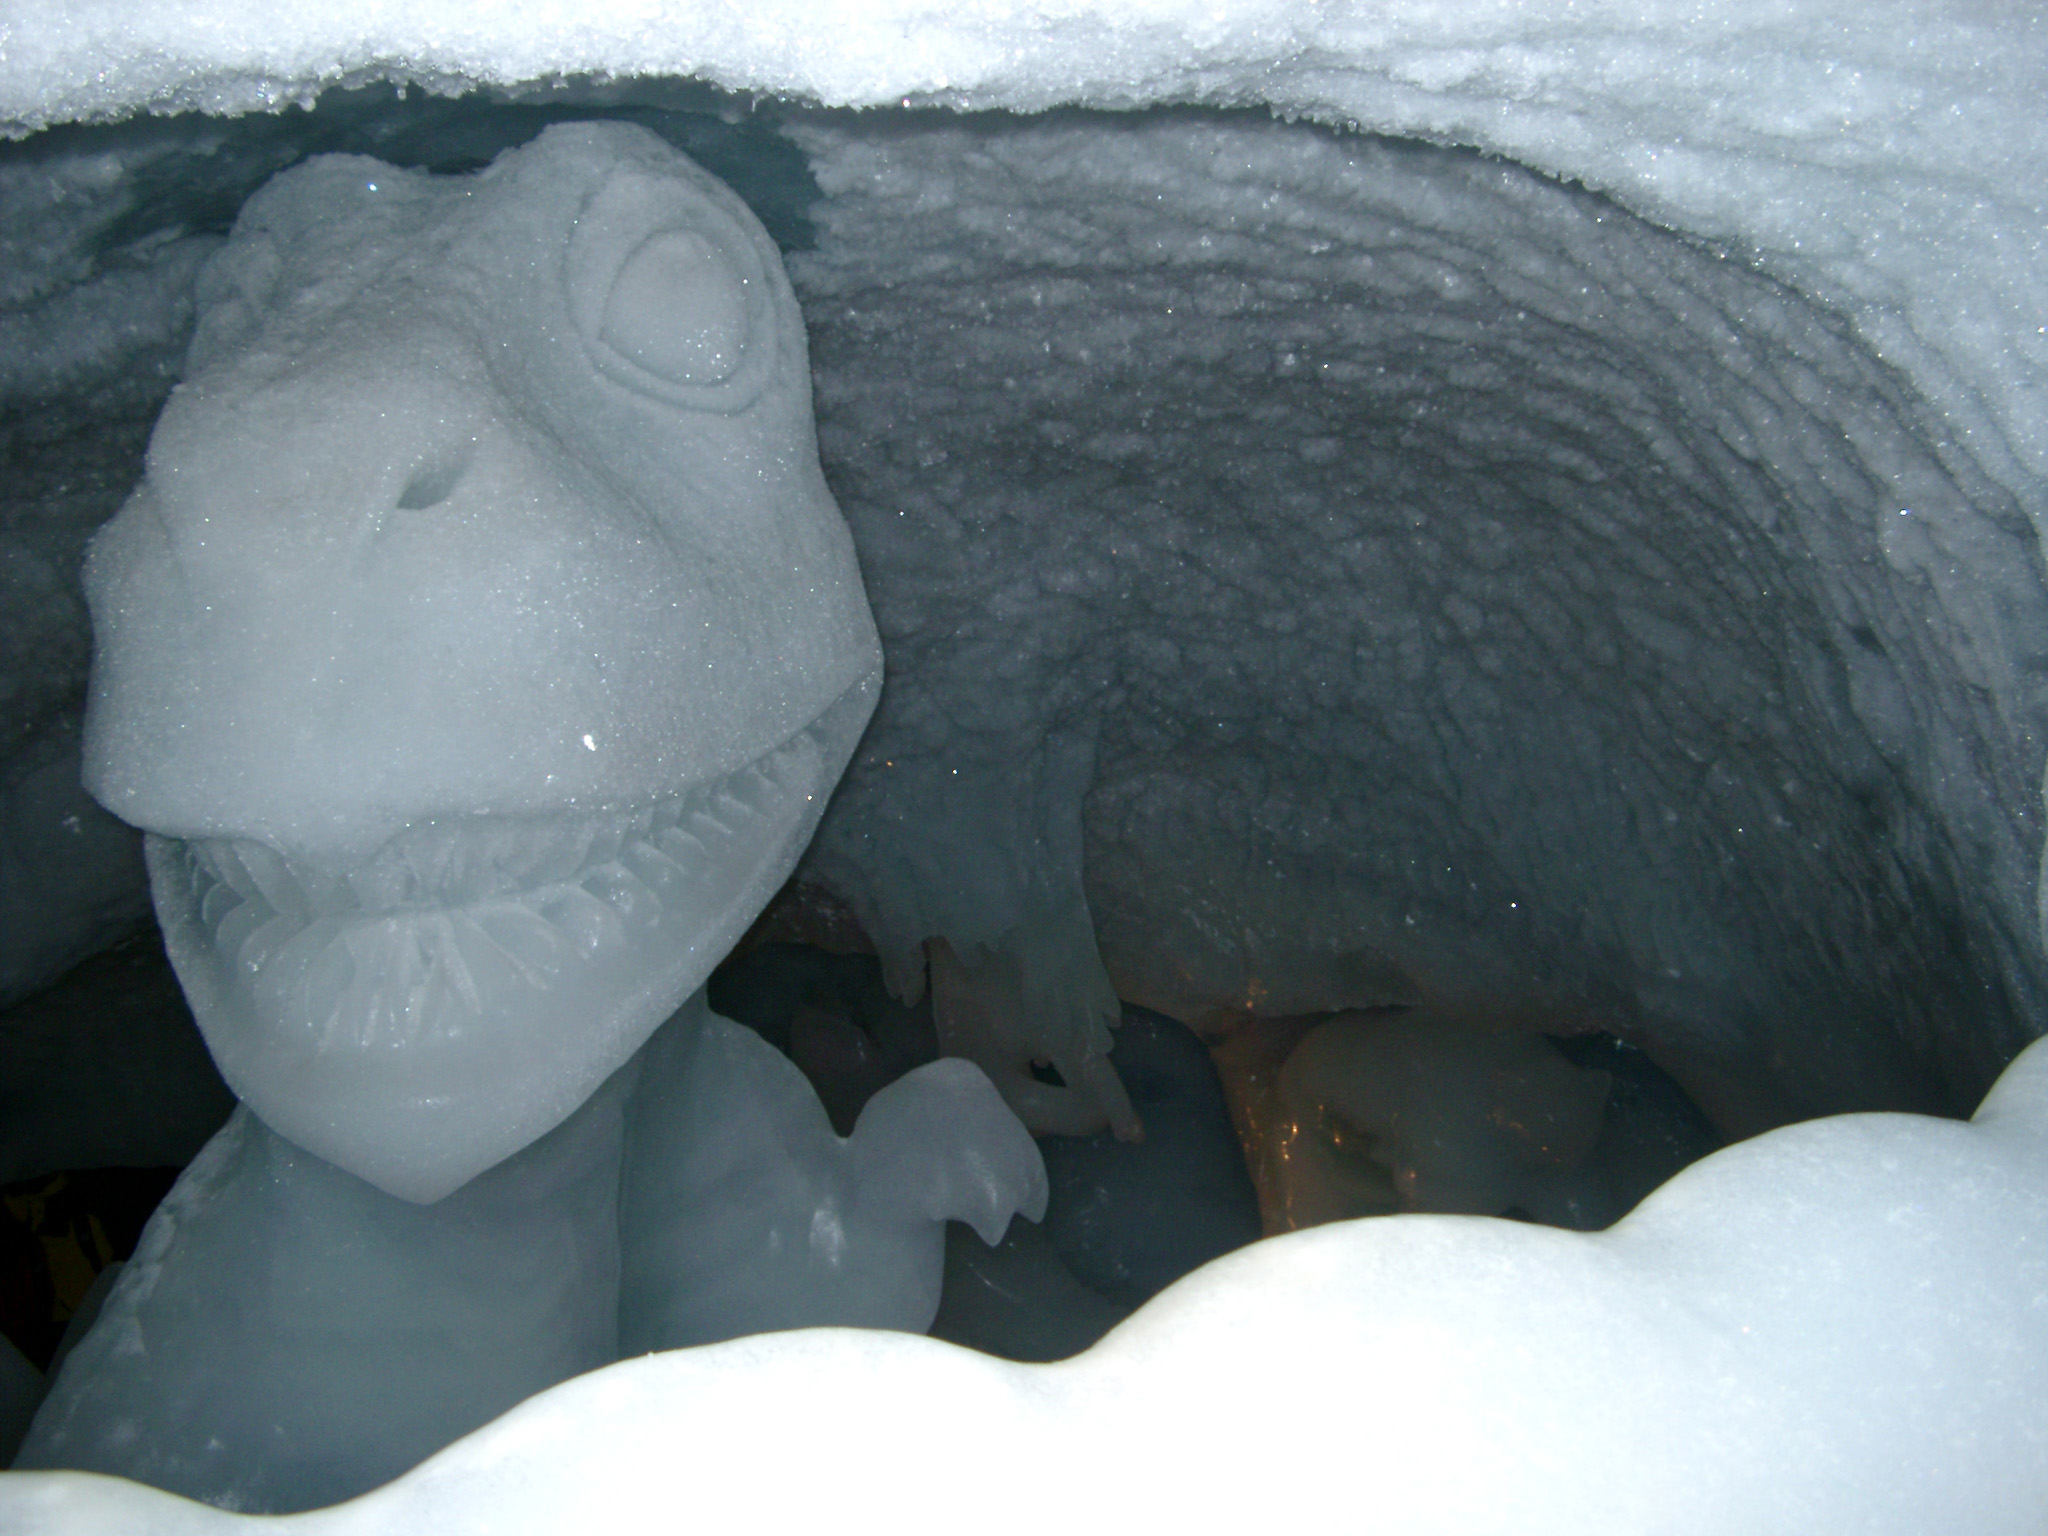 Close up Man Made Snow Dinosaur Sculpture at the Ice Cave.